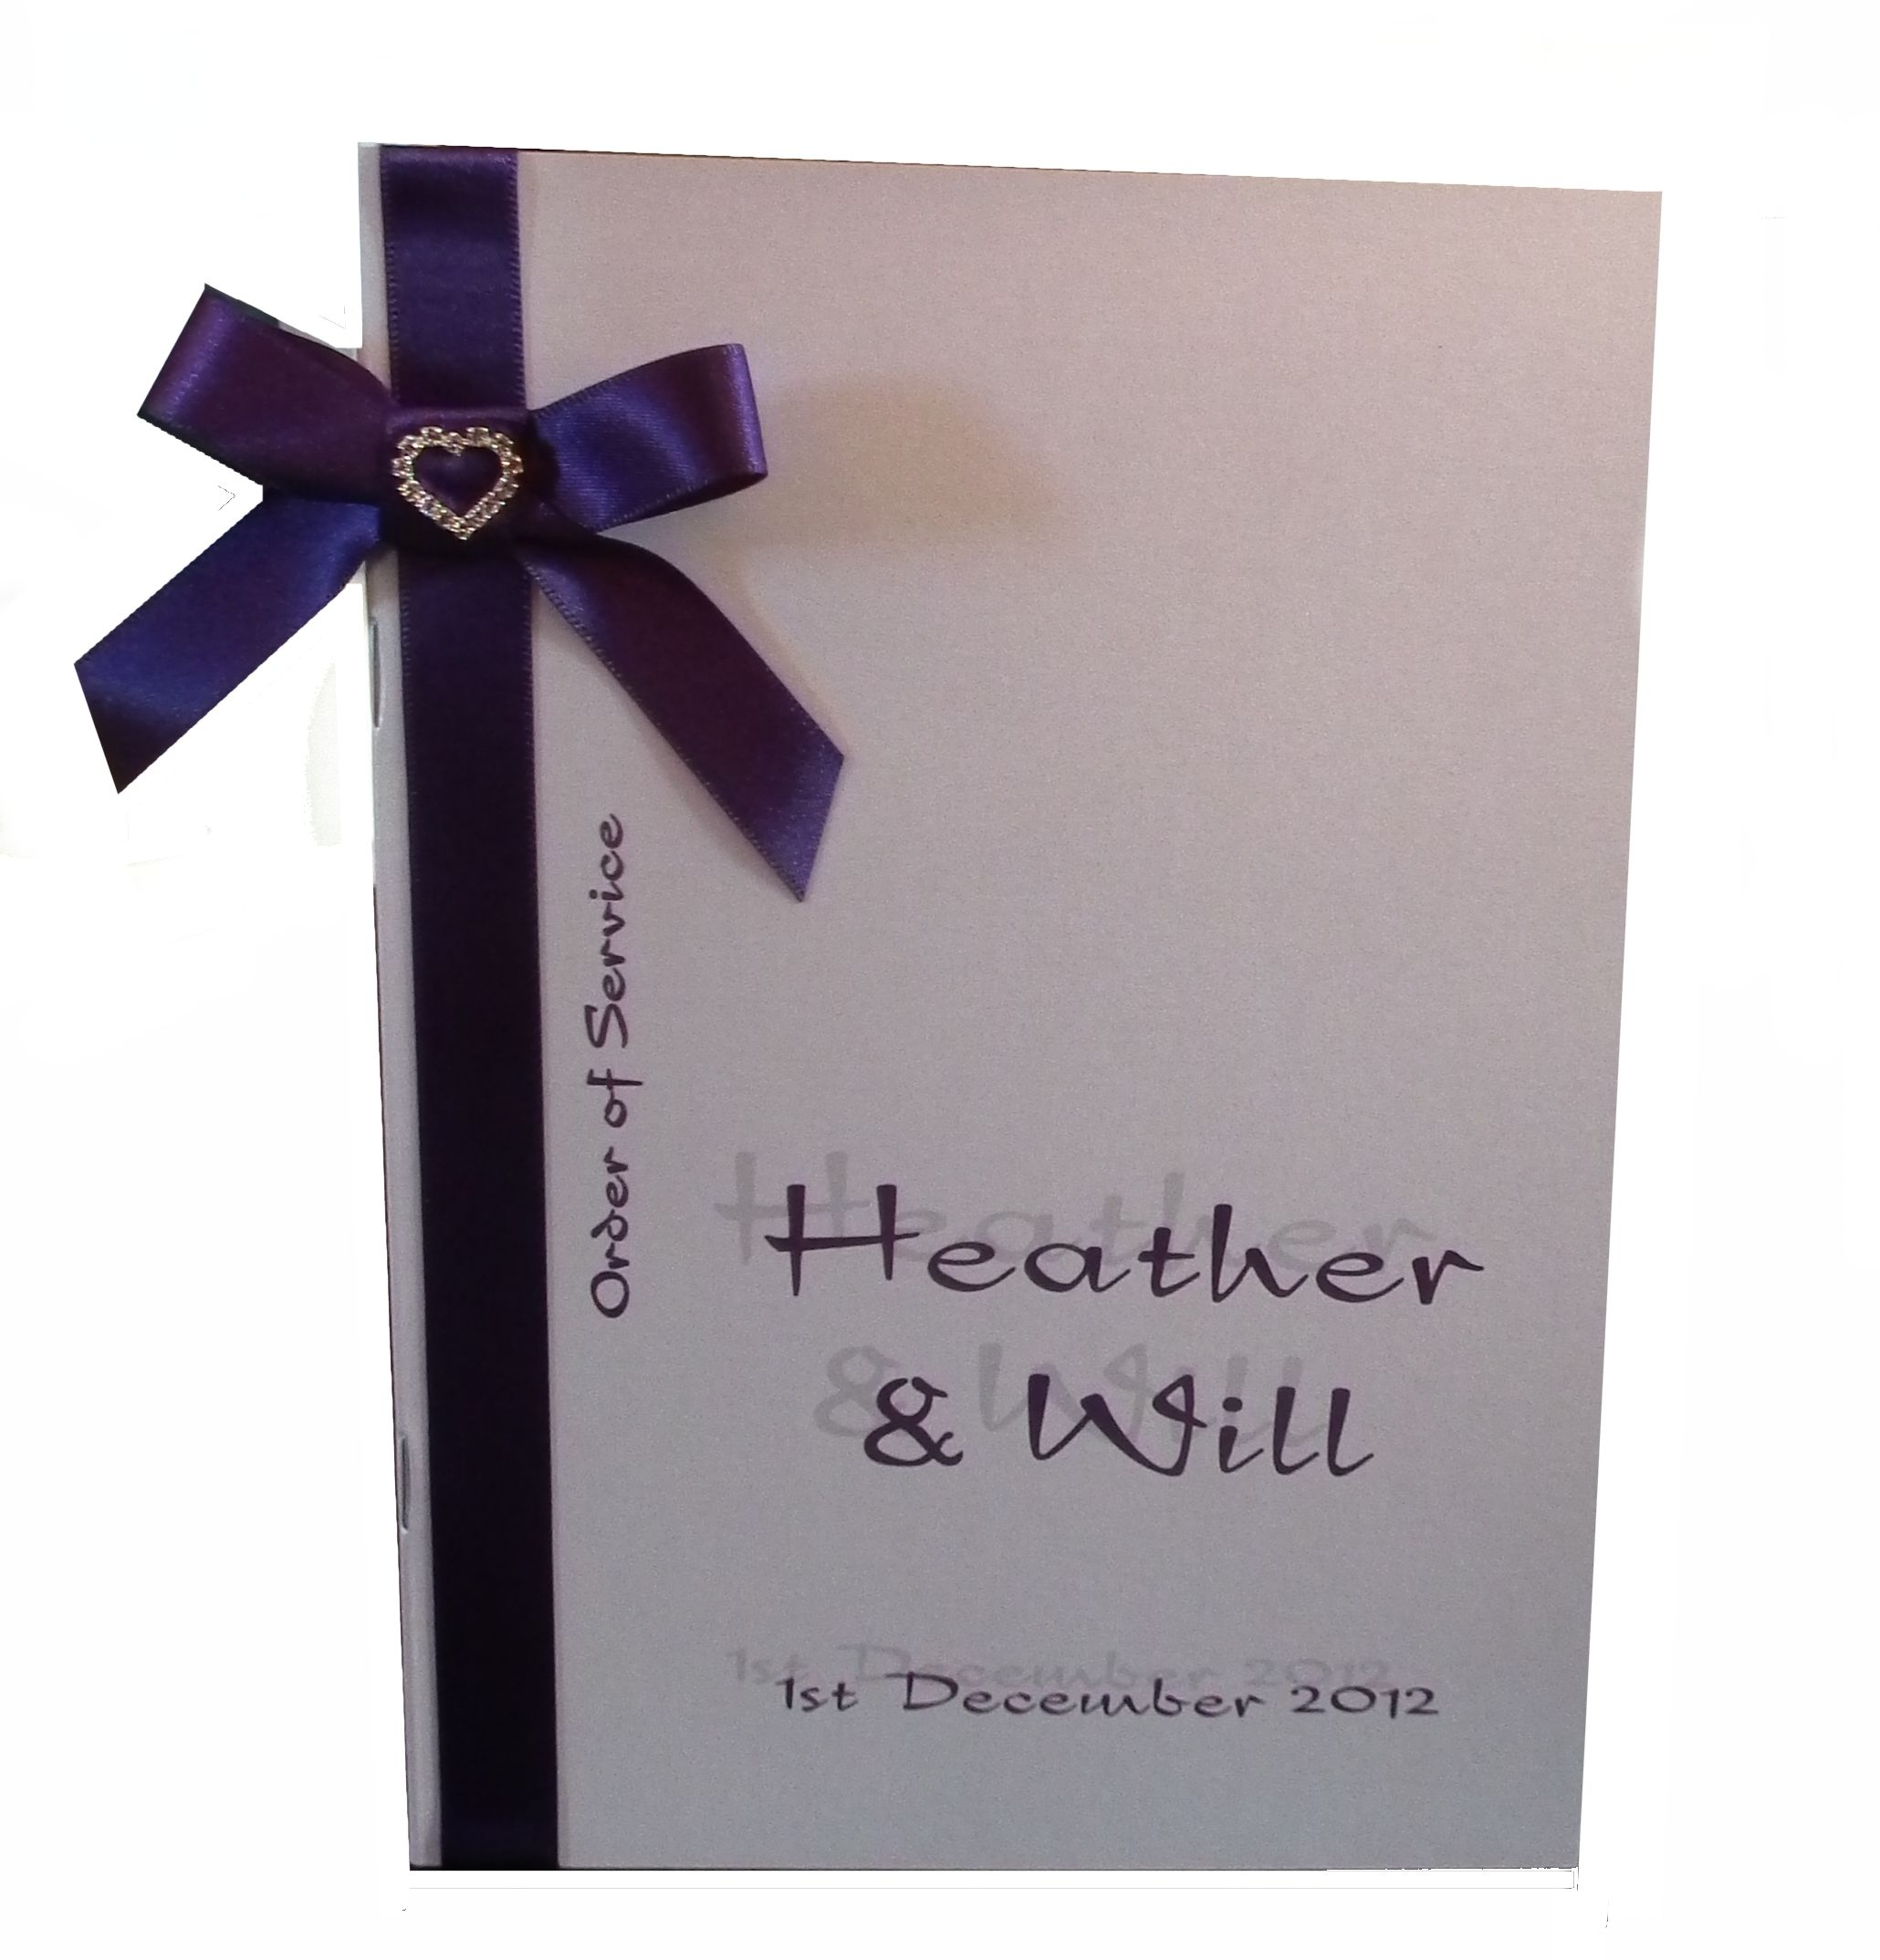 White and Cadbury Purple wedding Order of Service with silver toned diamante heart on bow www.lilguy.co.uk